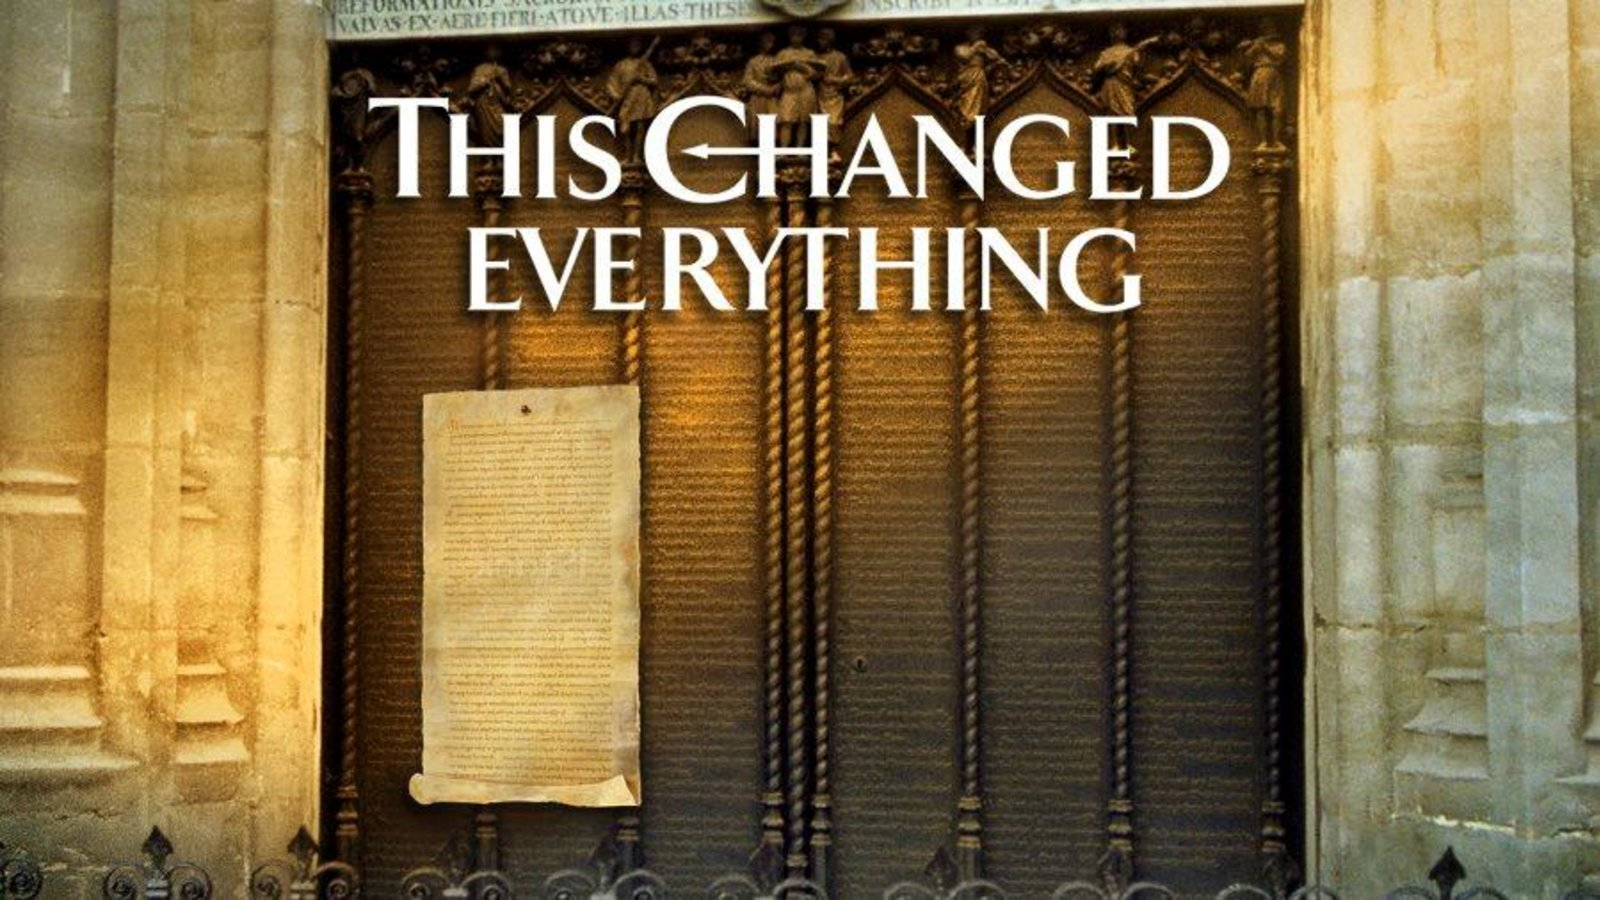 This Changed Everything - Episode 1 - Commemorating 500 Years of the Reformation